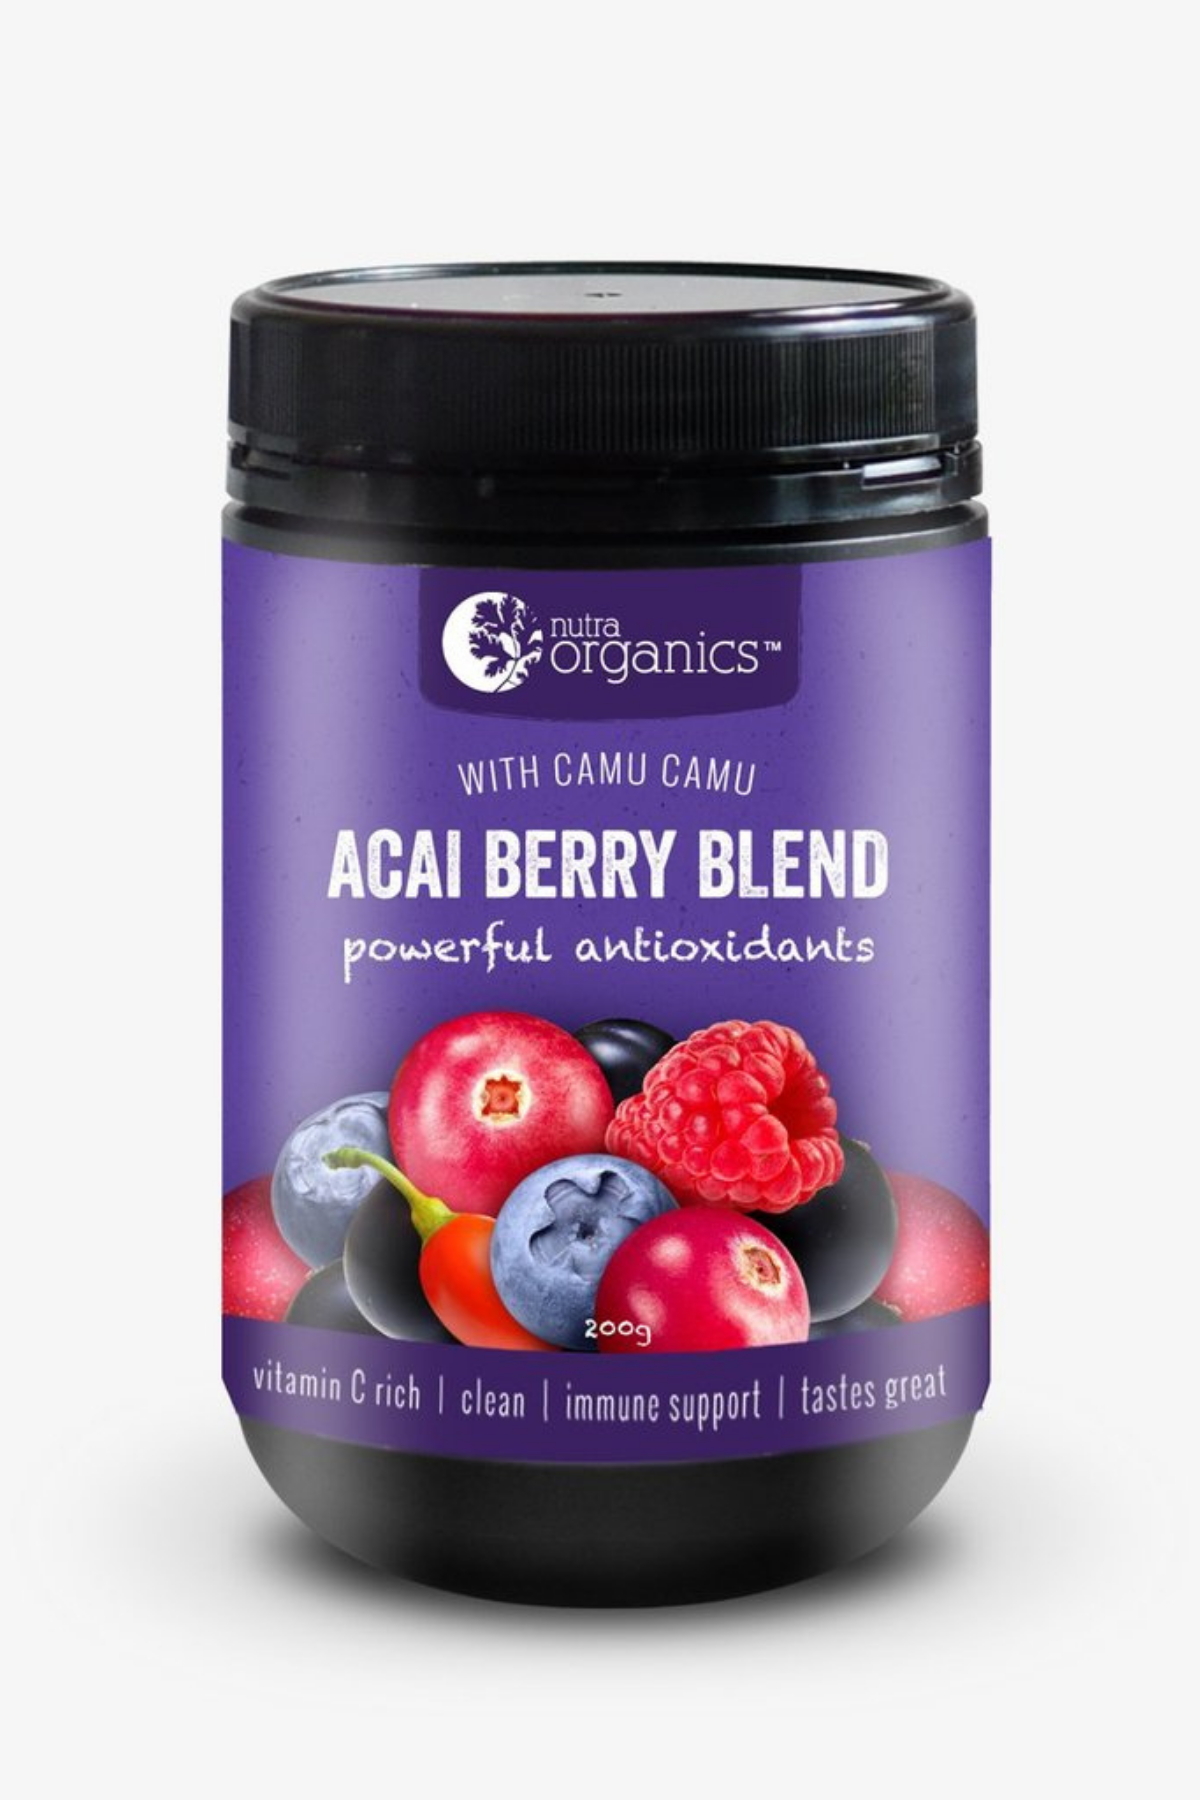 Acai Berry Blend Nutra Organics health beauty food online